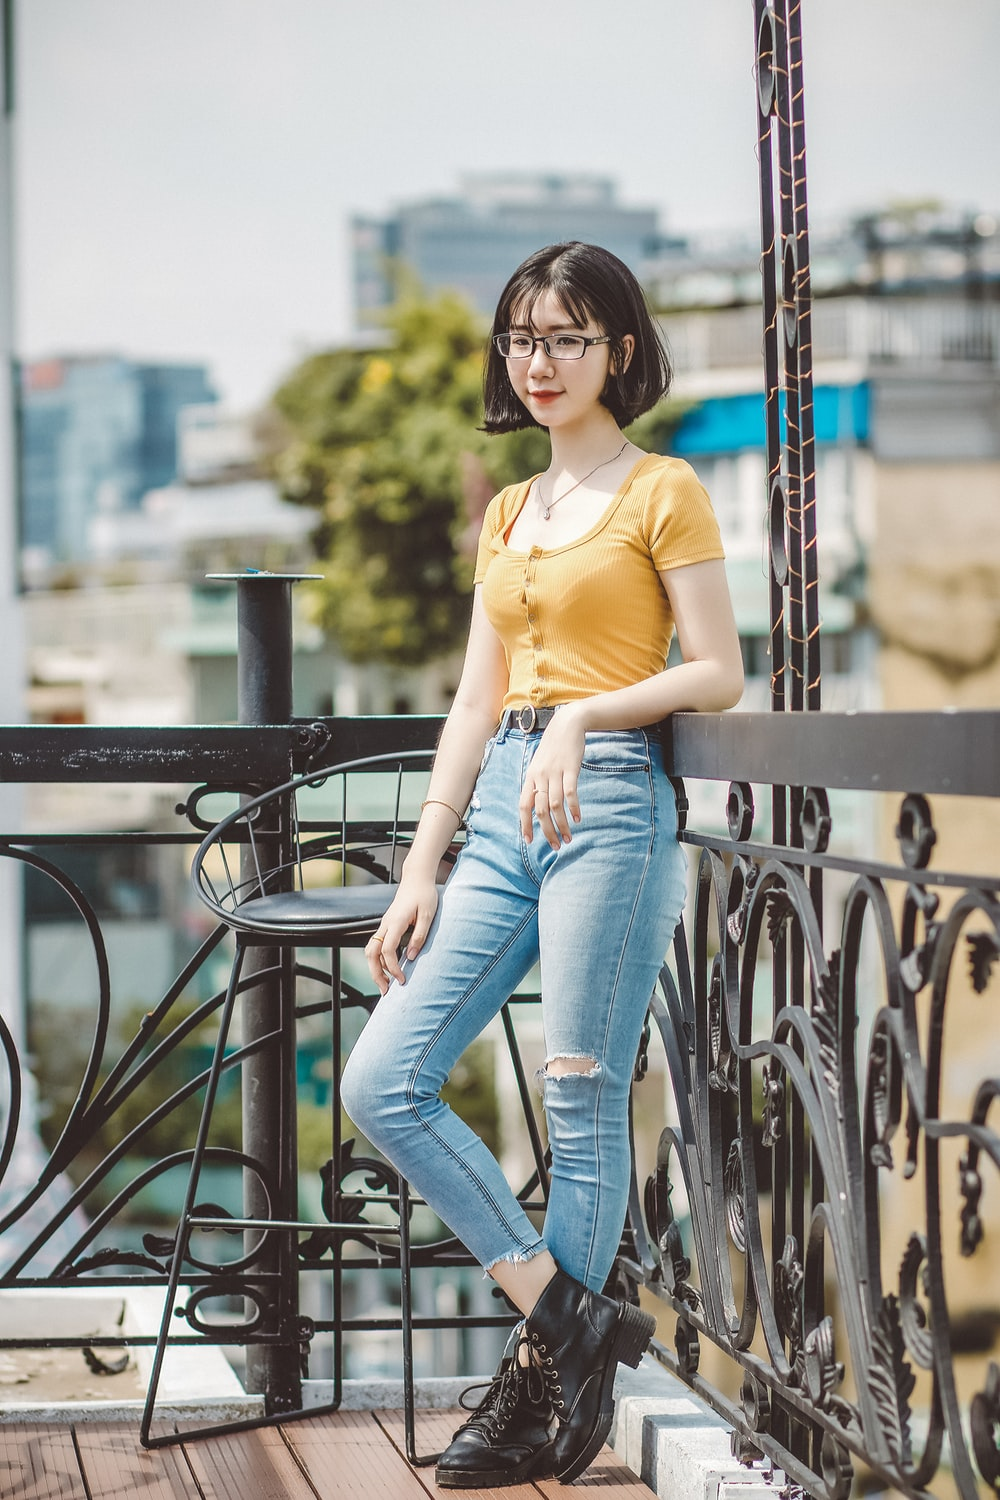 woman in yellow shirt and blue denim jeans sitting on black metal railings